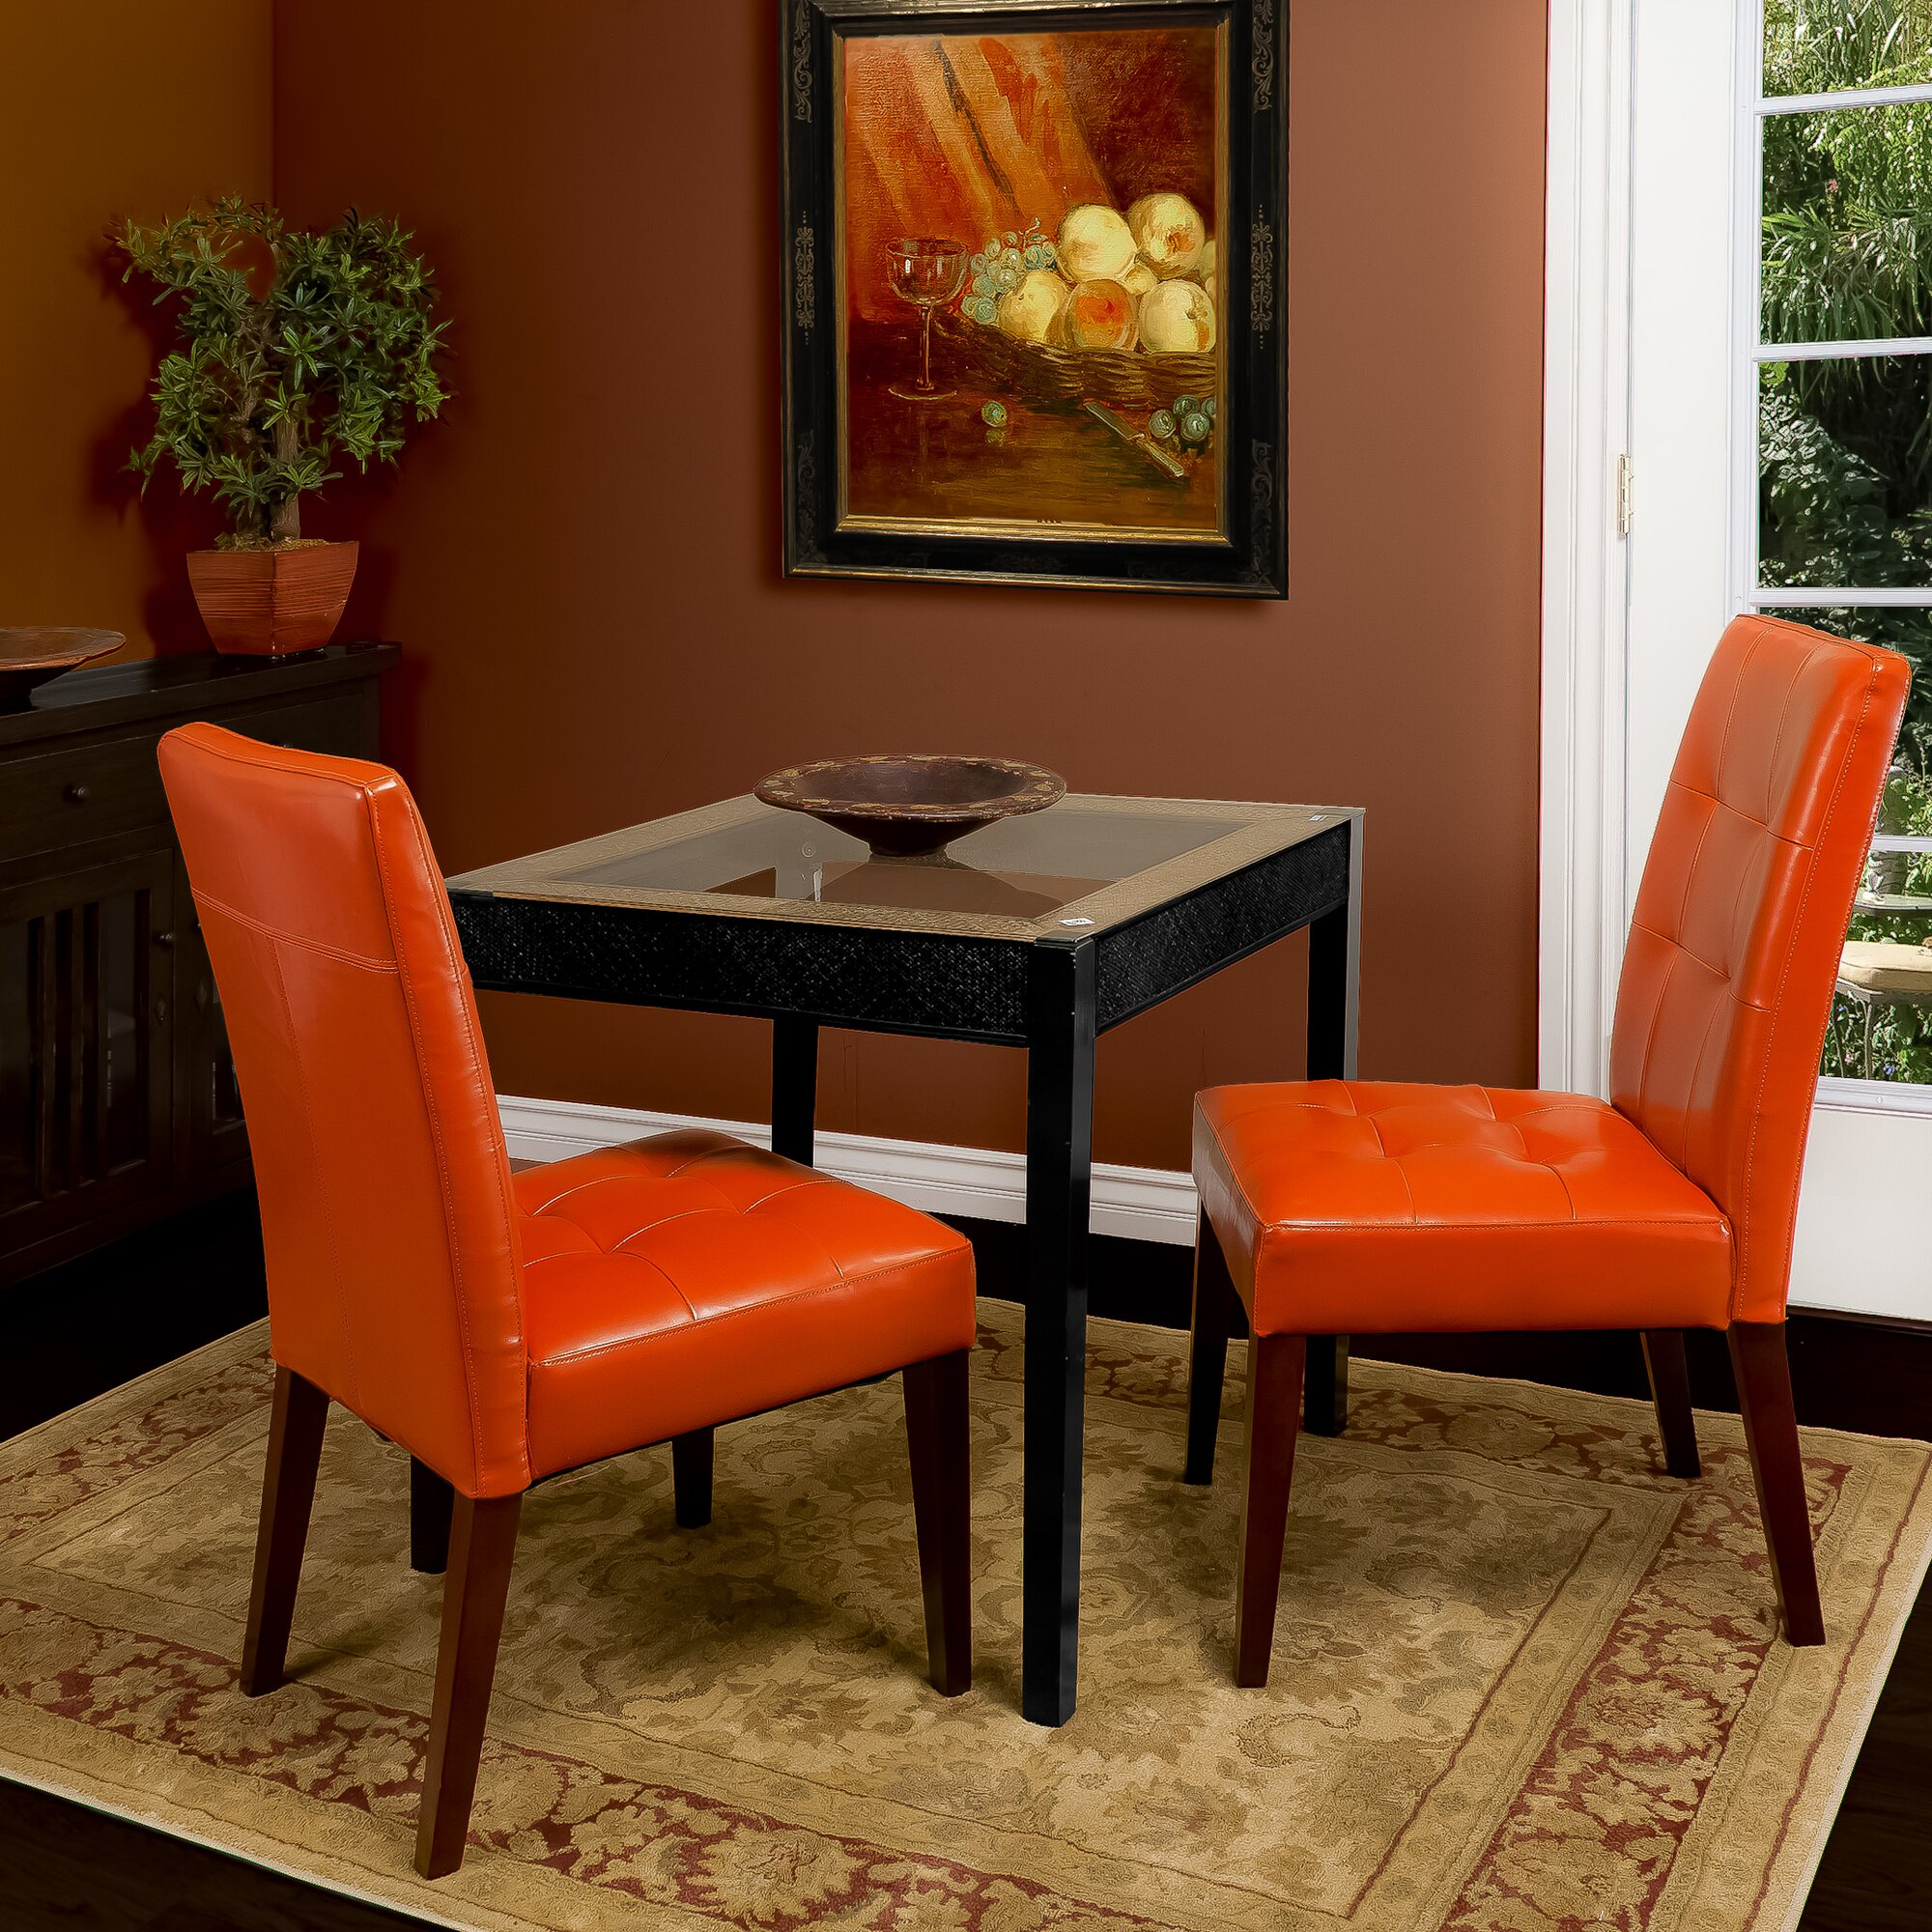 Tufted leather dining chairs - Talib Tufted Leather Dining Chair